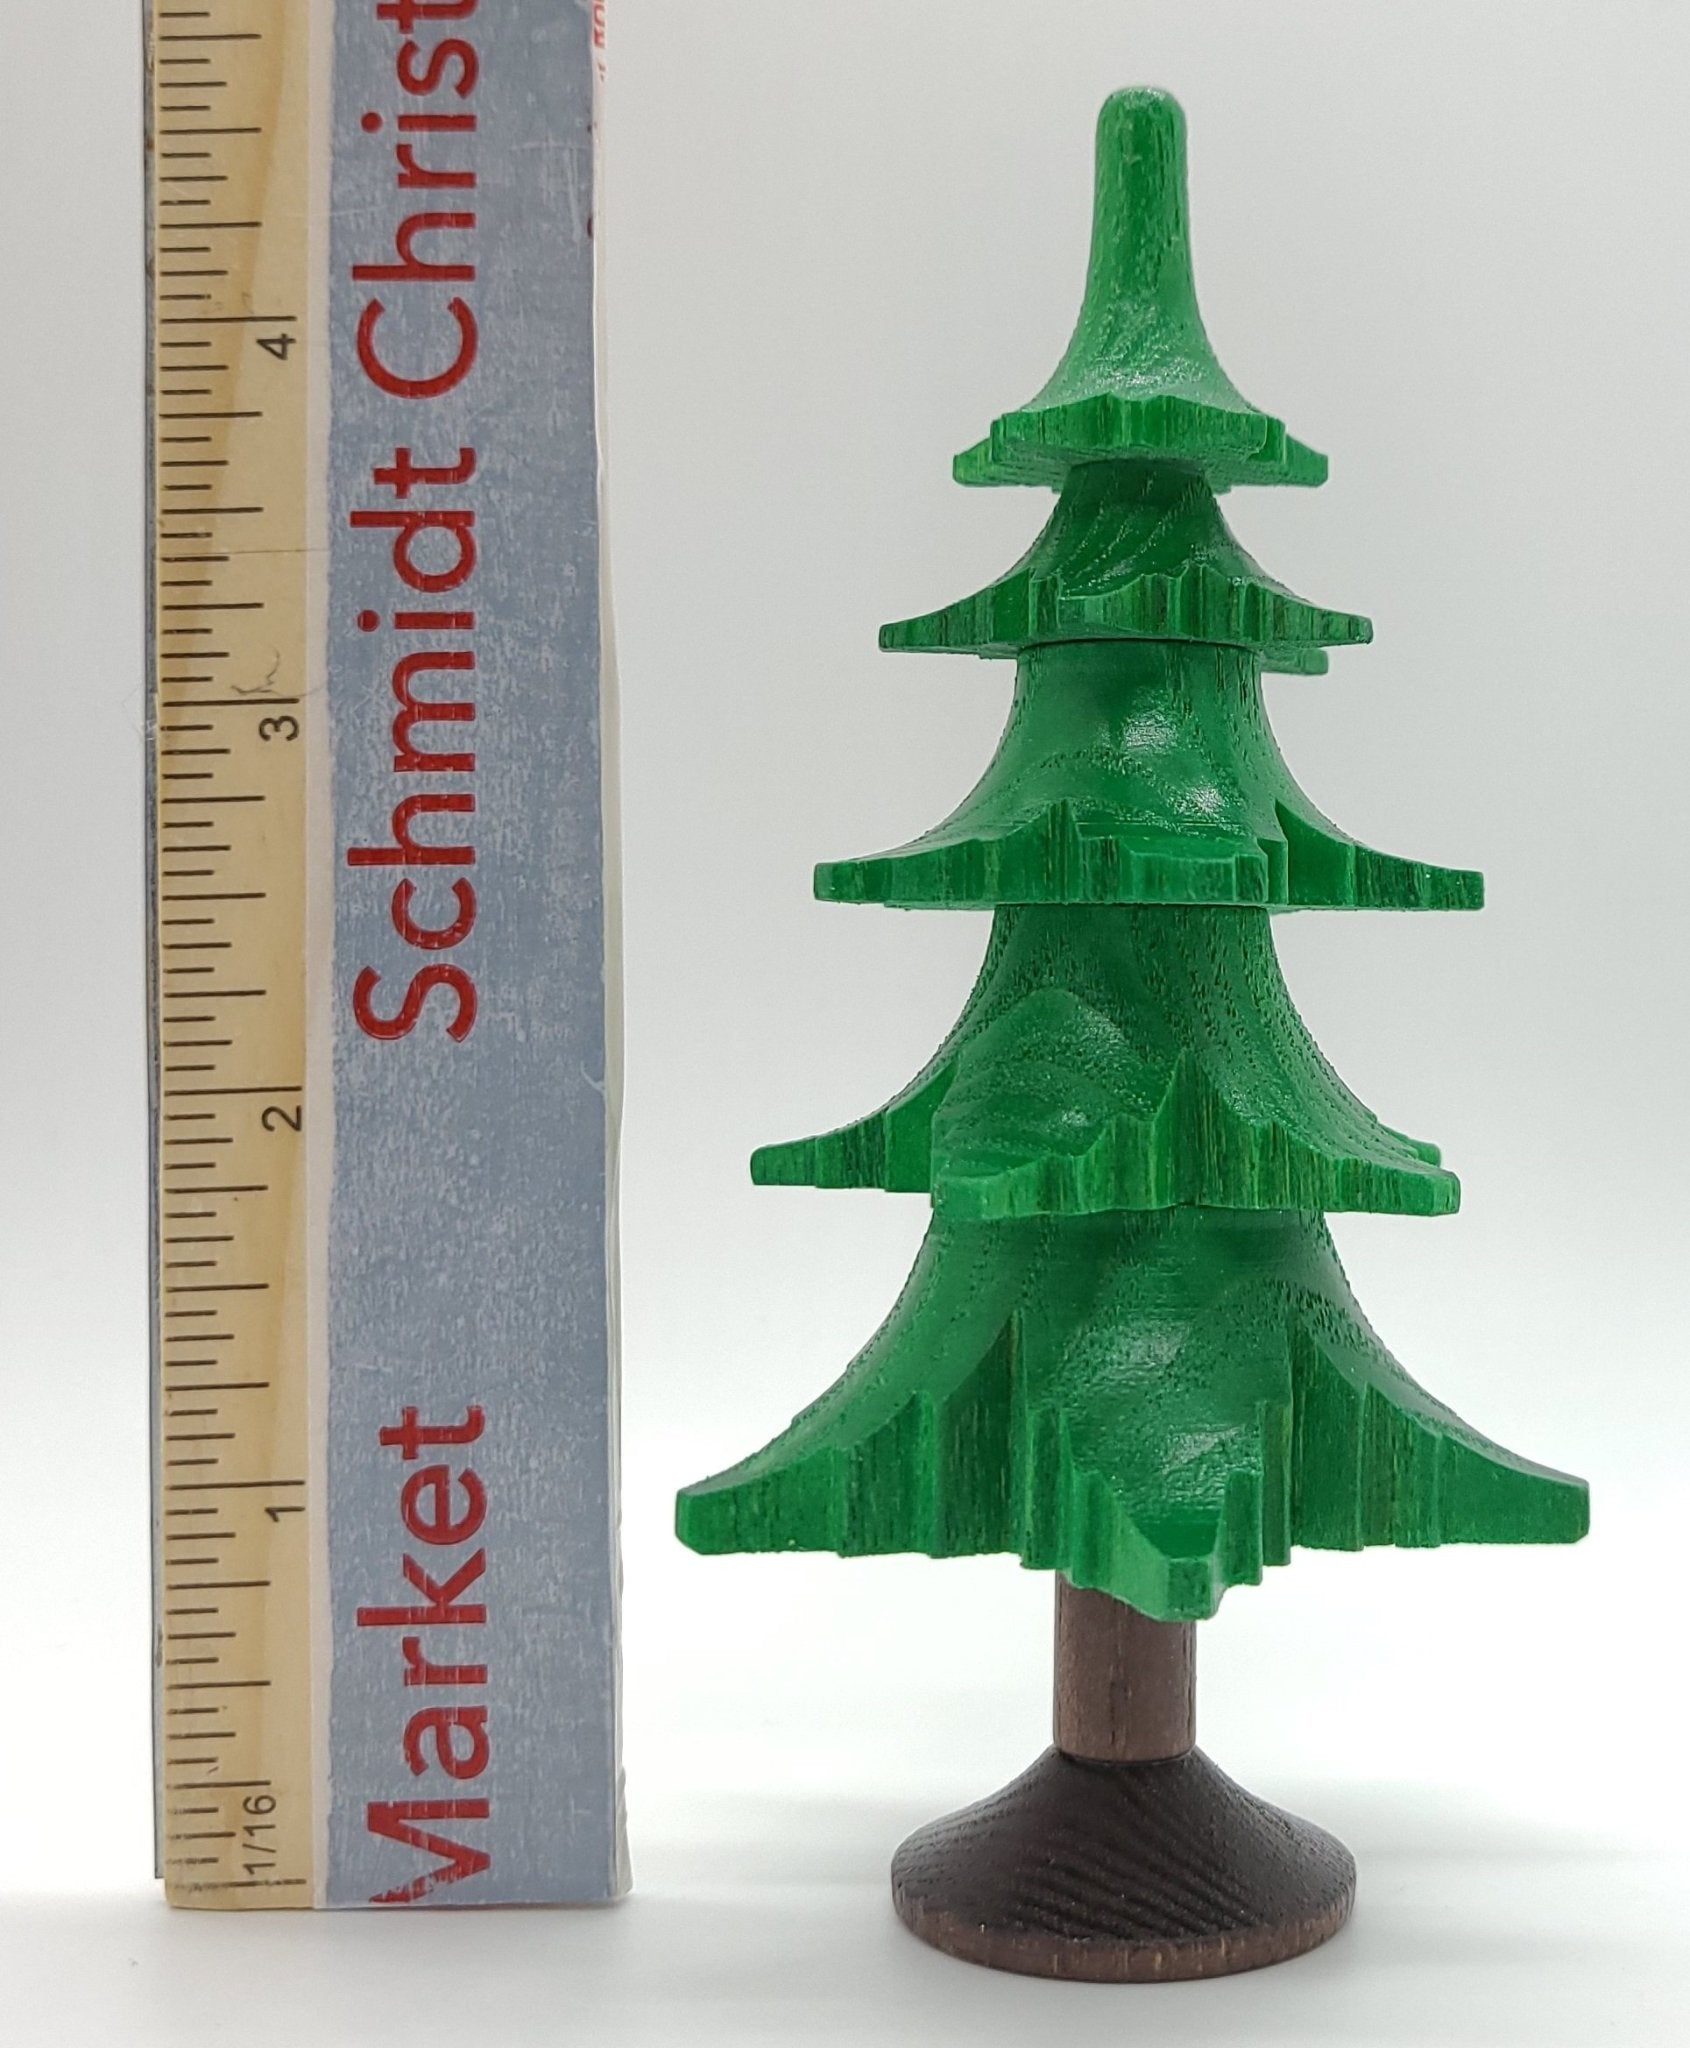 Handmade Greed Wood Tree with 5 Layers - Schmidt Christmas Market Christmas Decoration